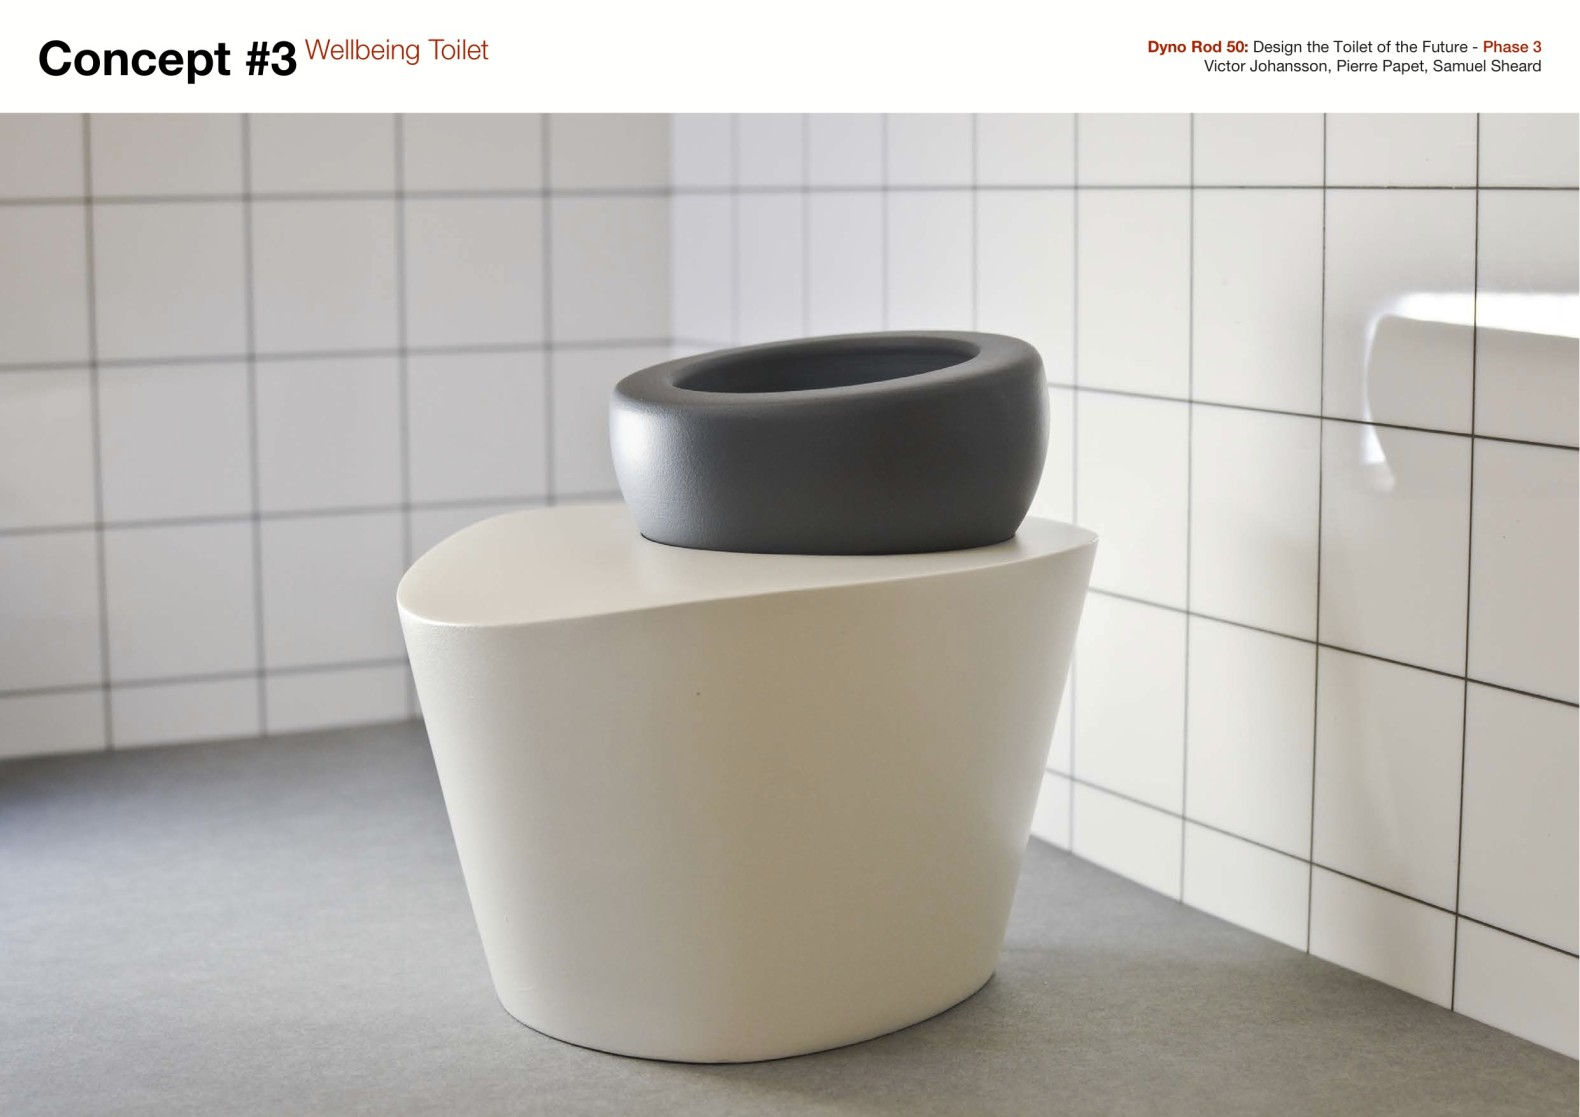 Ergonomically Correct Wellbeing Toilet Helps You Poop